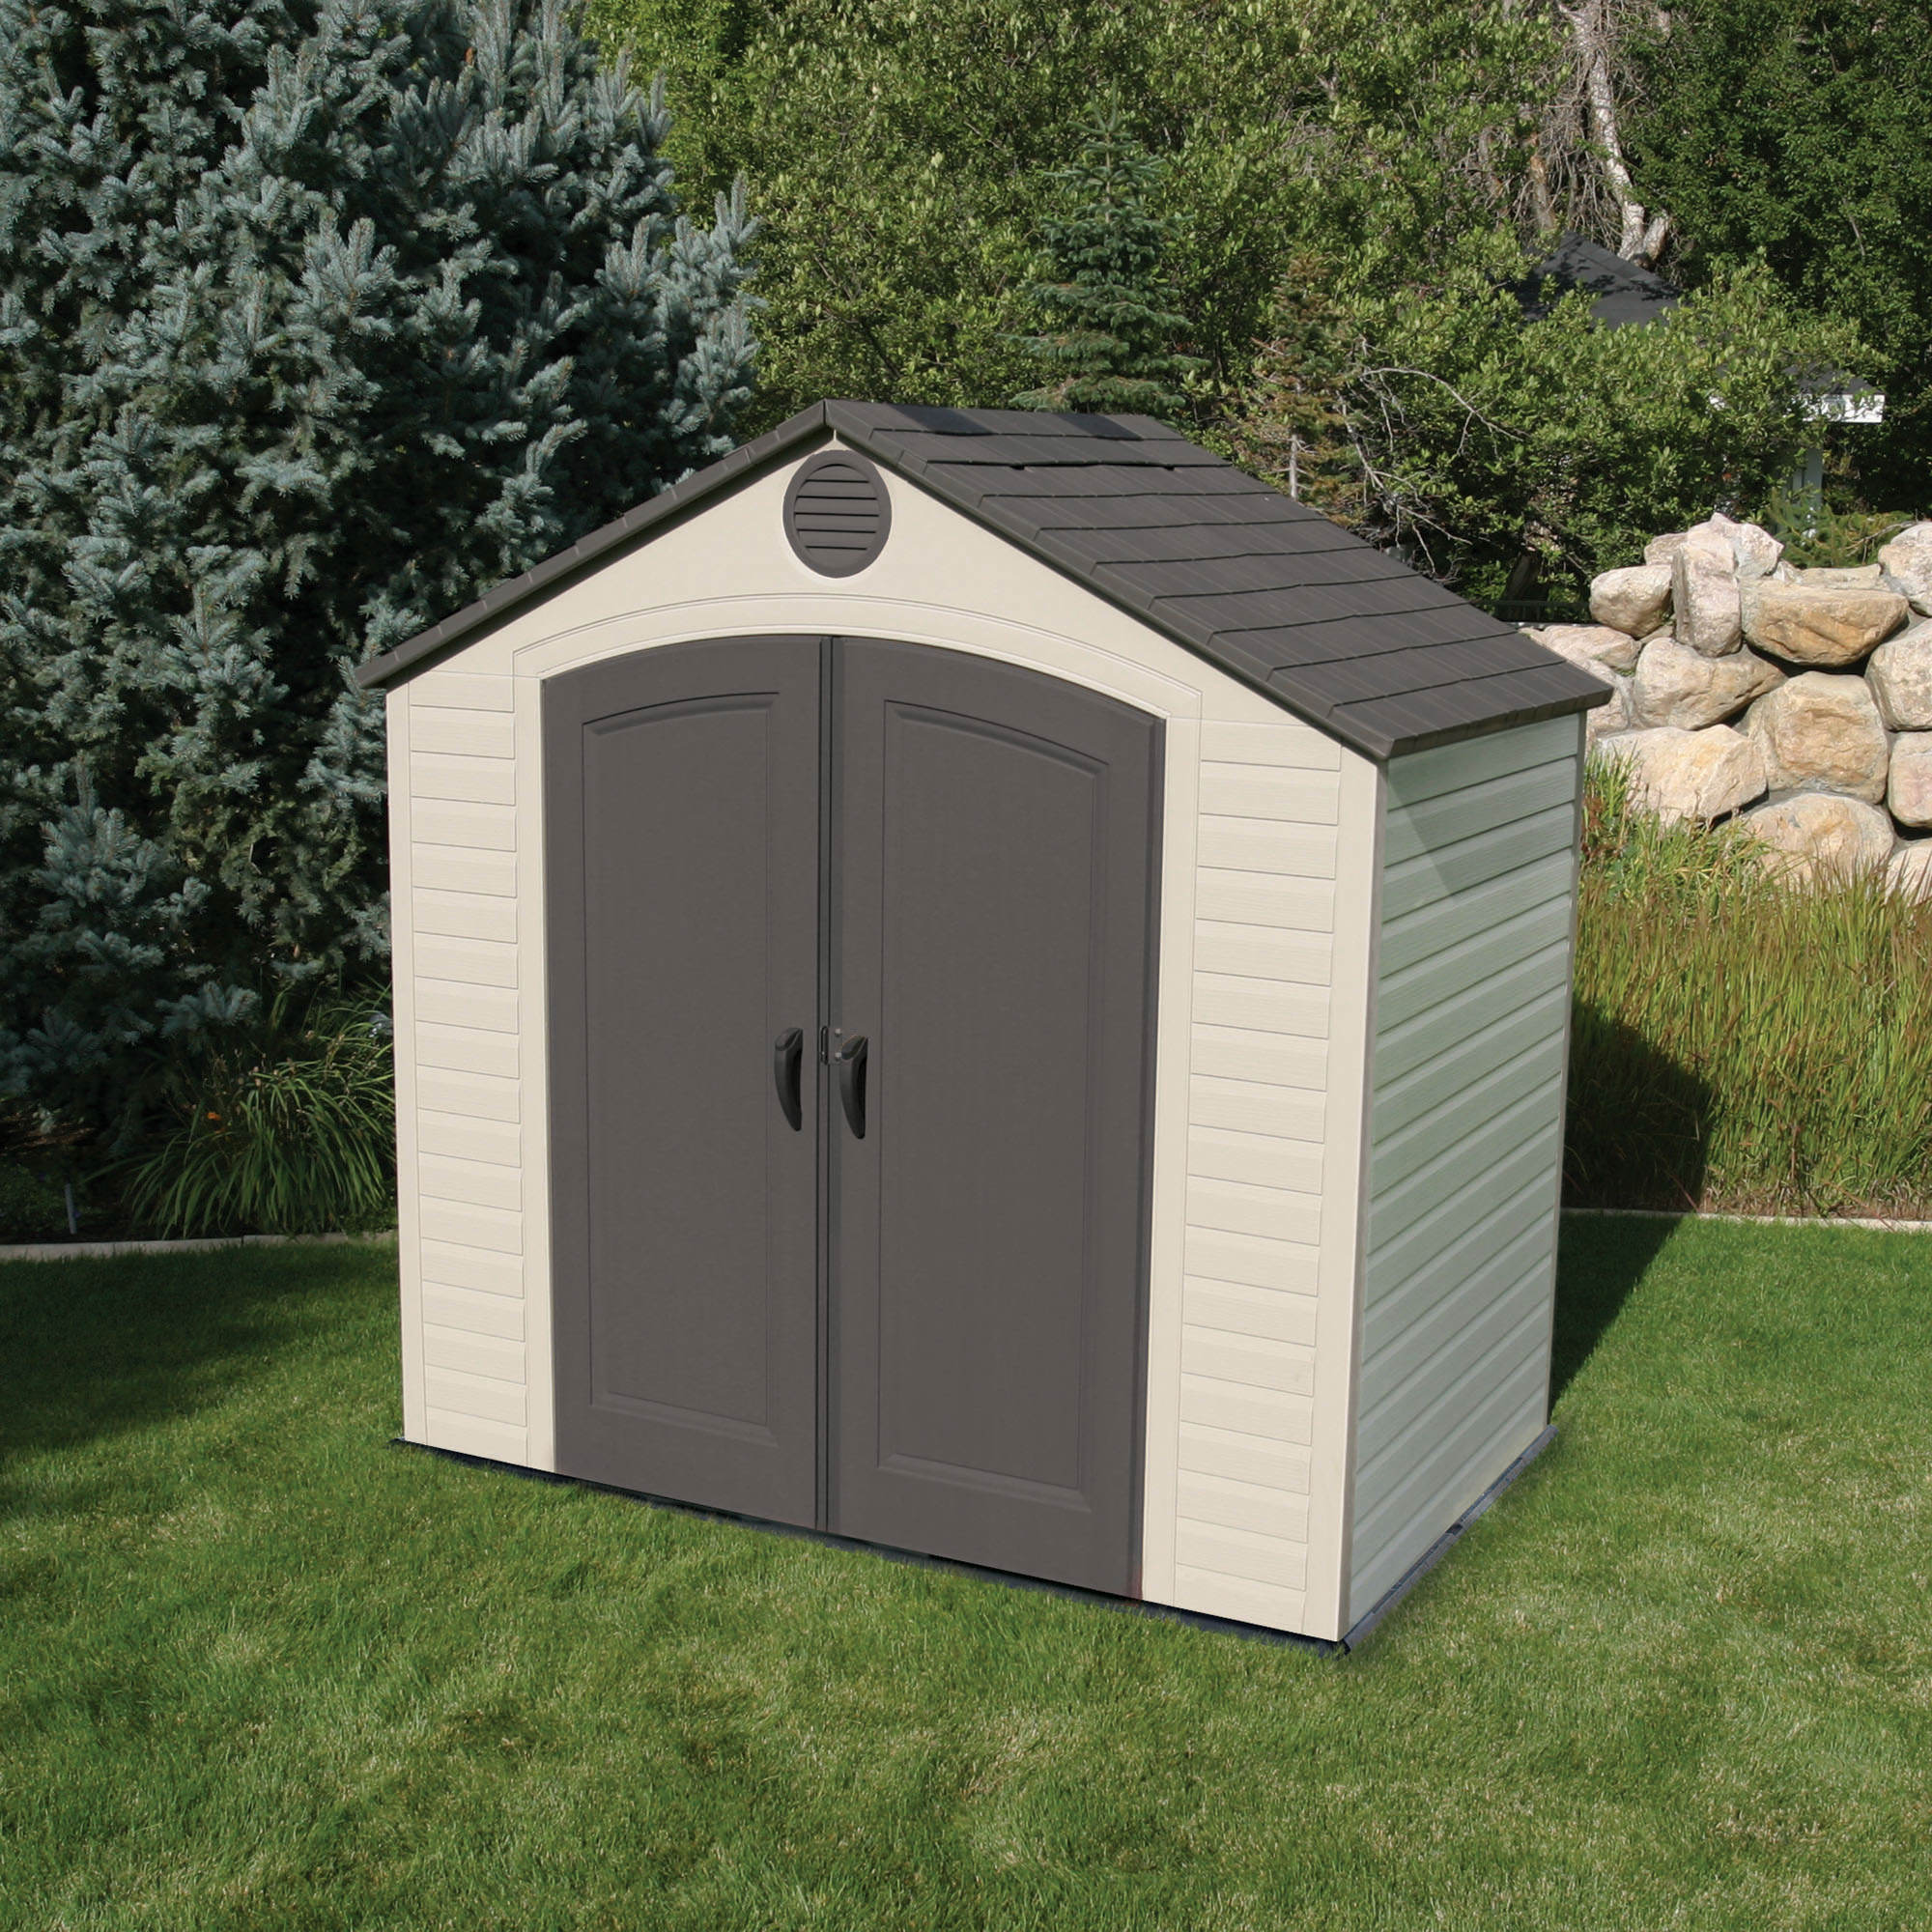 Lifetime 8 39 x 5 39 outdoor storage shed bj 39 s wholesale club for Garden shed for lawn mower